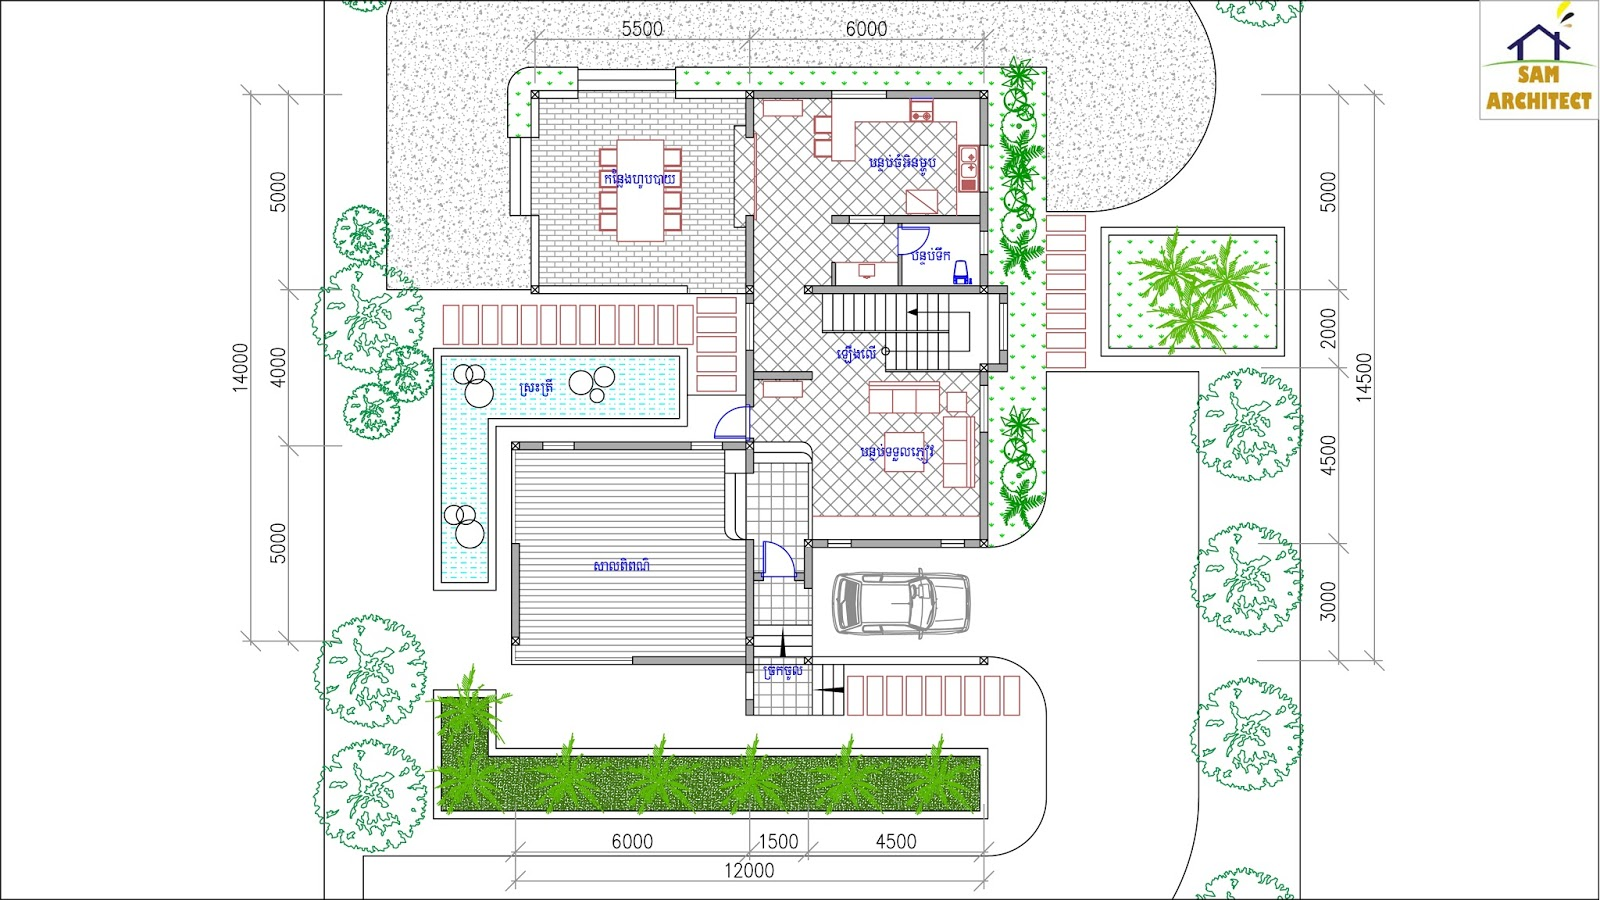 SketchUp Home Plan 12x14m 3 Story House With 4 Bedrooms ... on Sketchup Backyard id=33721